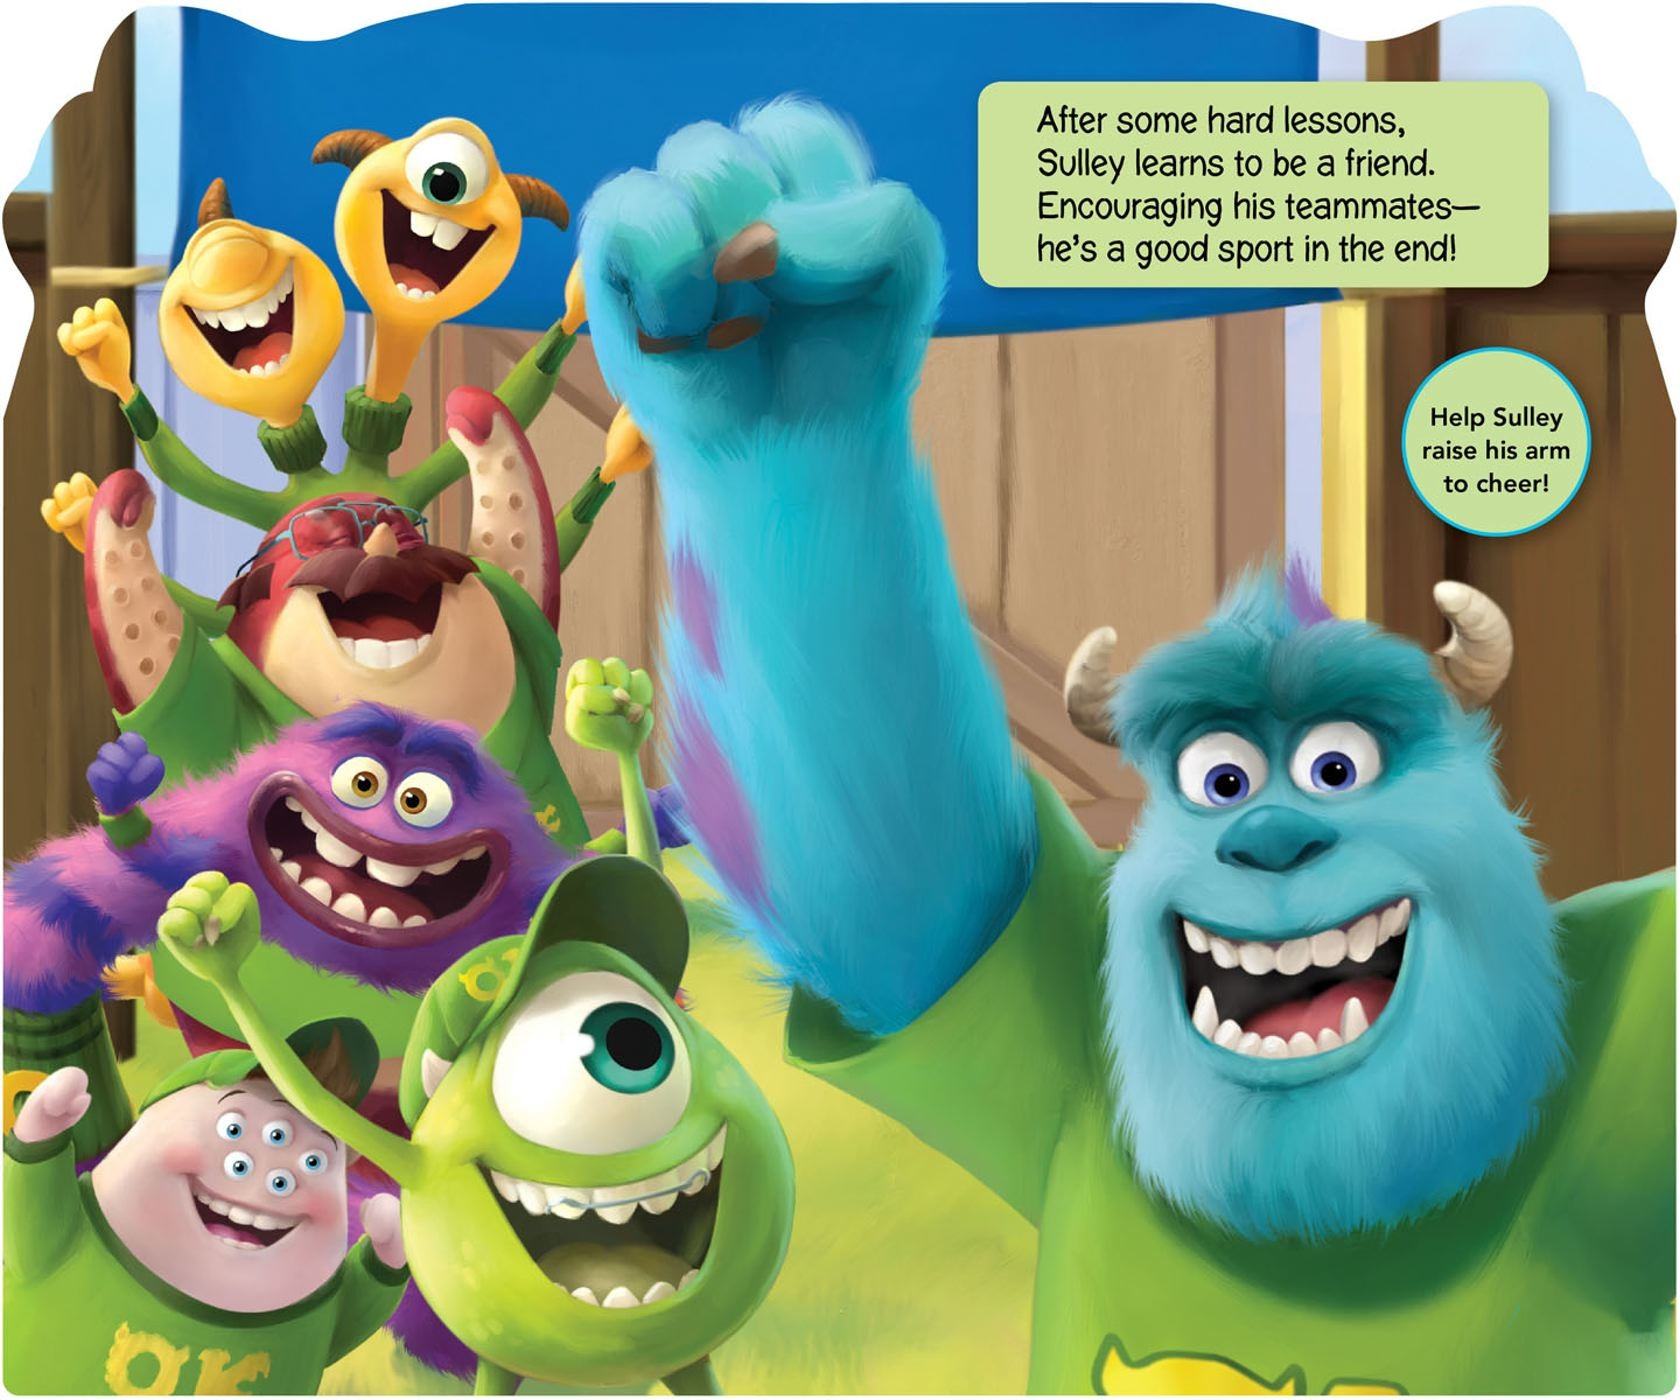 Disney-pixar-monsters-university-go-sulley!-9780794427399.in02